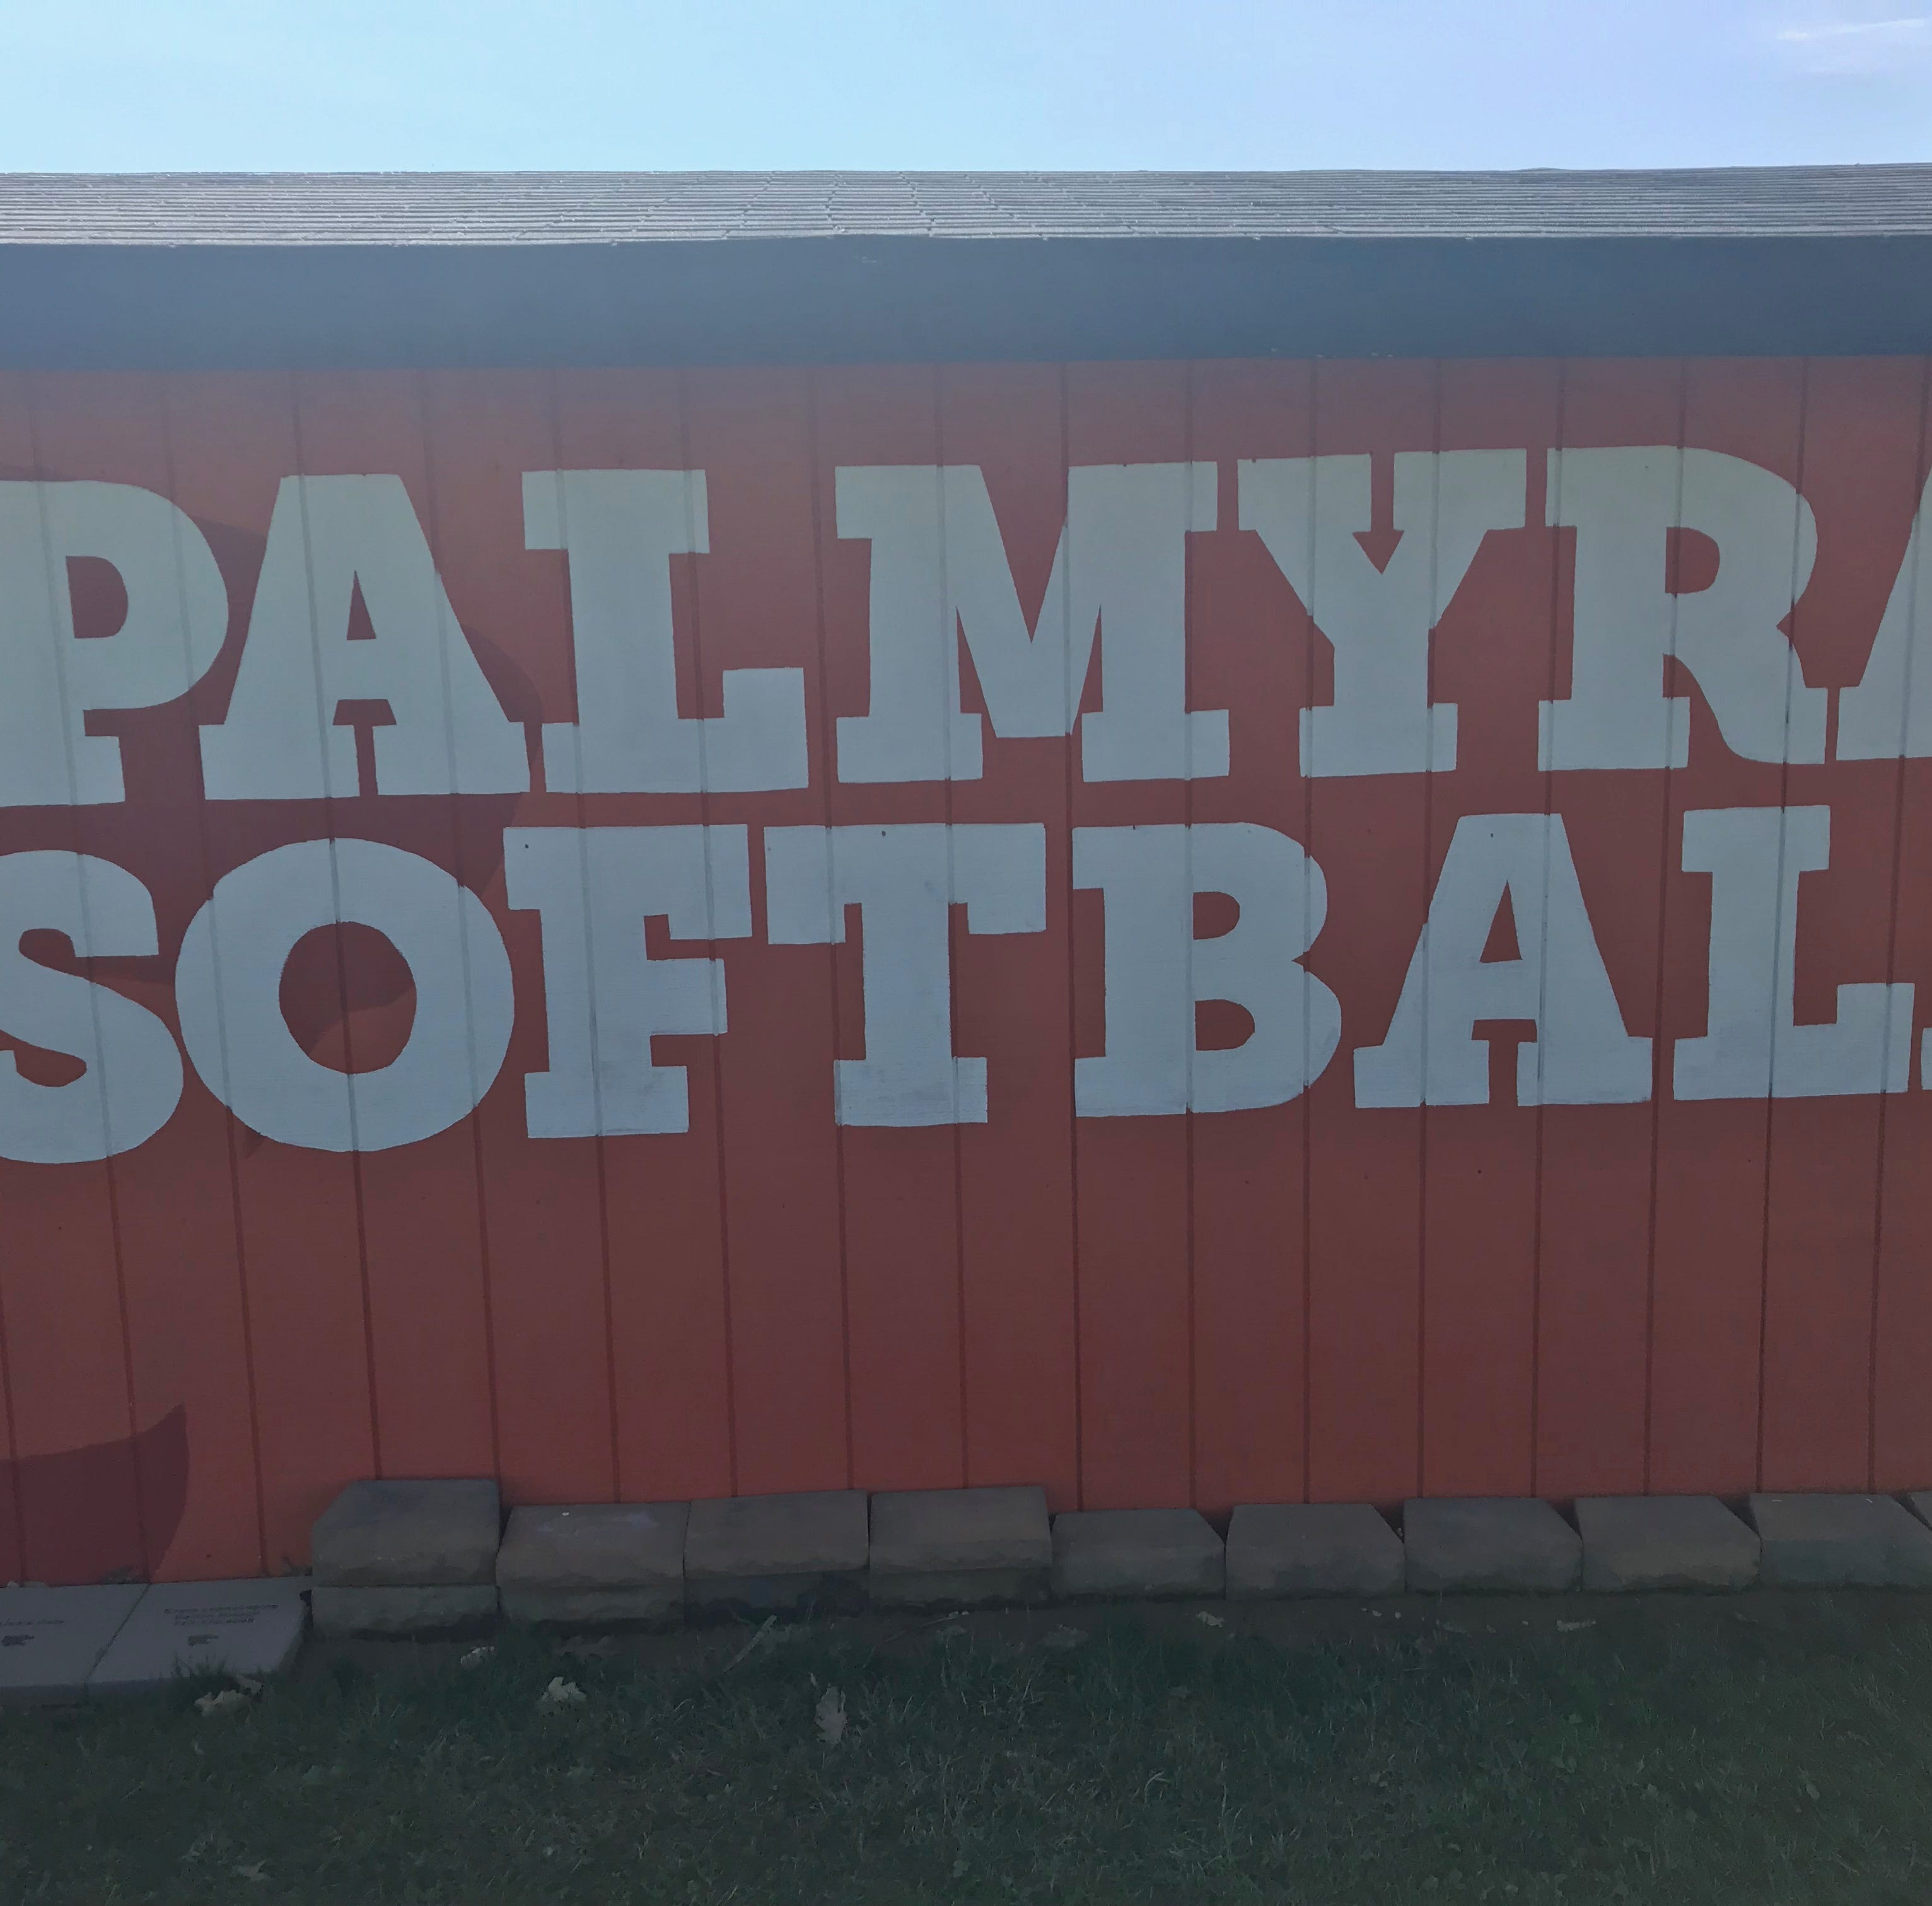 Palmyra softball flying high through the first half of the season